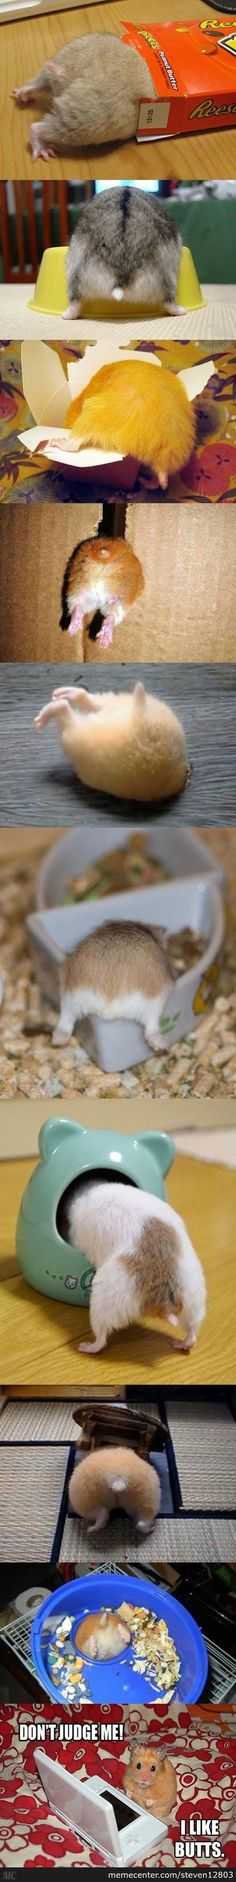 A common site for any hamsters owner.